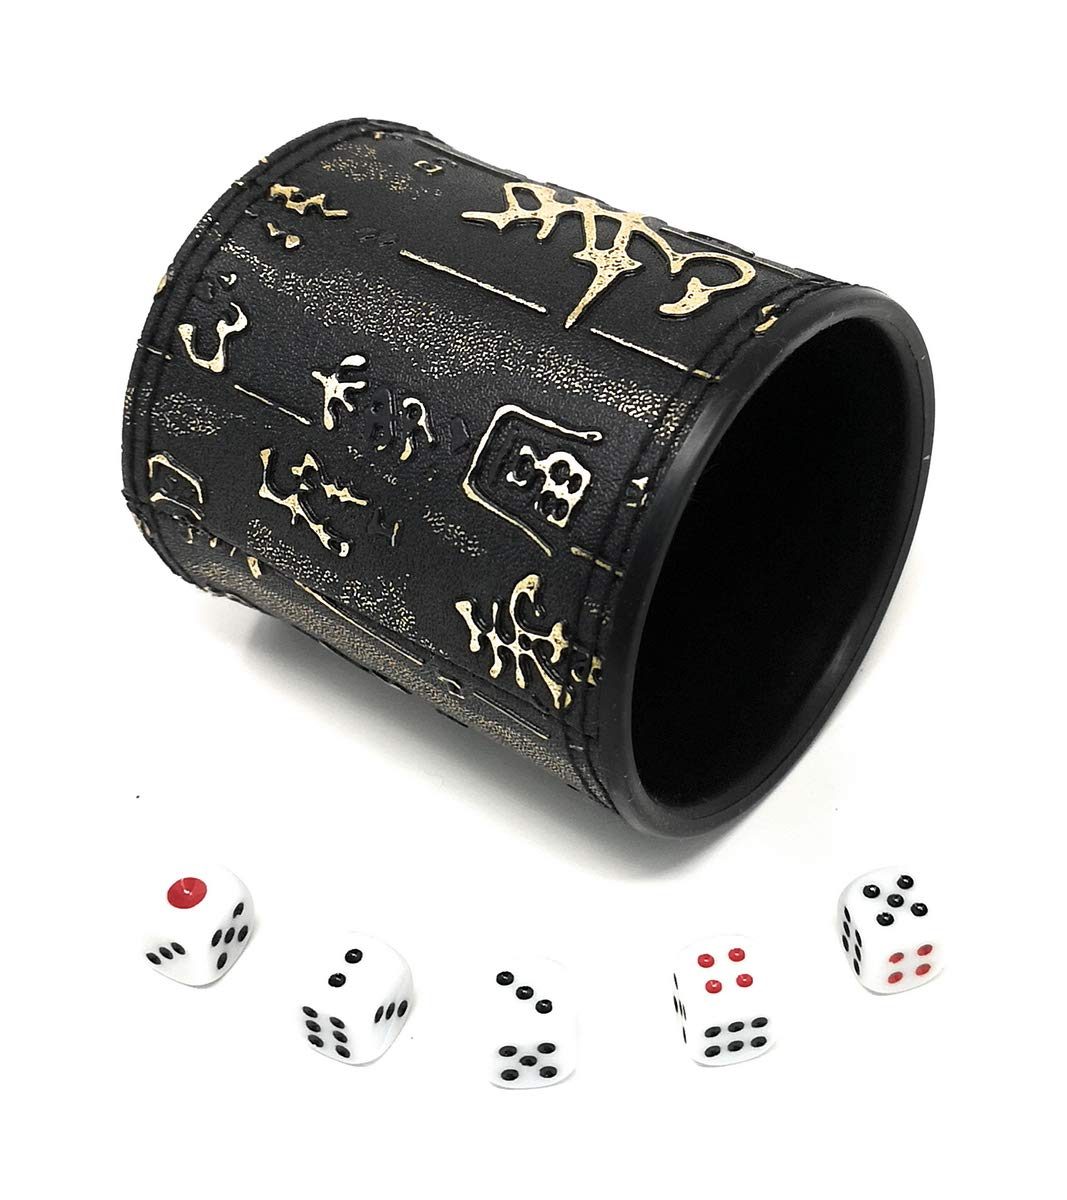 Backgammon or other Dice Games Chinese Calligraphy Design THY TRADING THY COLLECTIBLES Dice Cup with 5 Dices PU Leather Professional Dice Shaker Cup Set for Yahtzee Craps